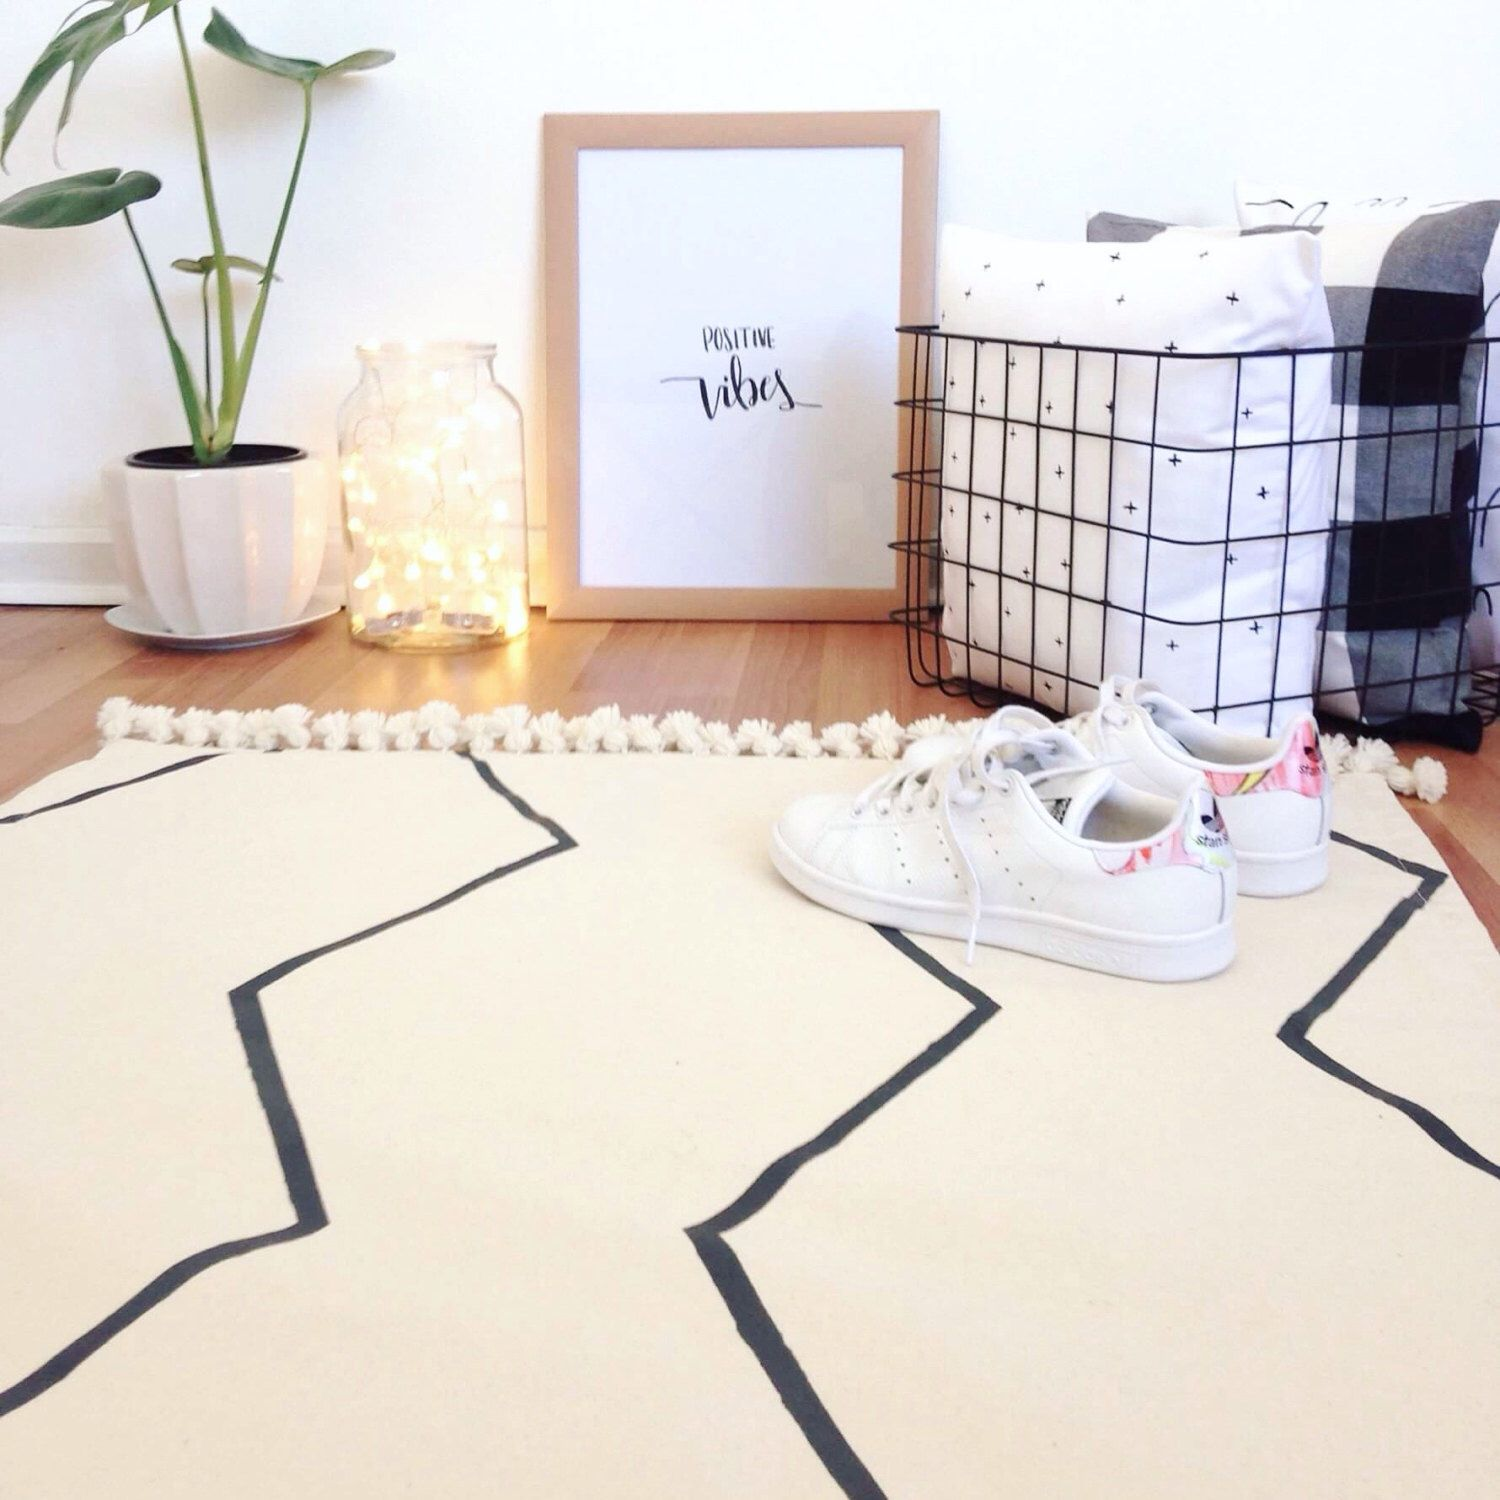 Minimalist Colorful Rug Designs: Pin By Ingrid Opitz On NEW ROOM DECOR